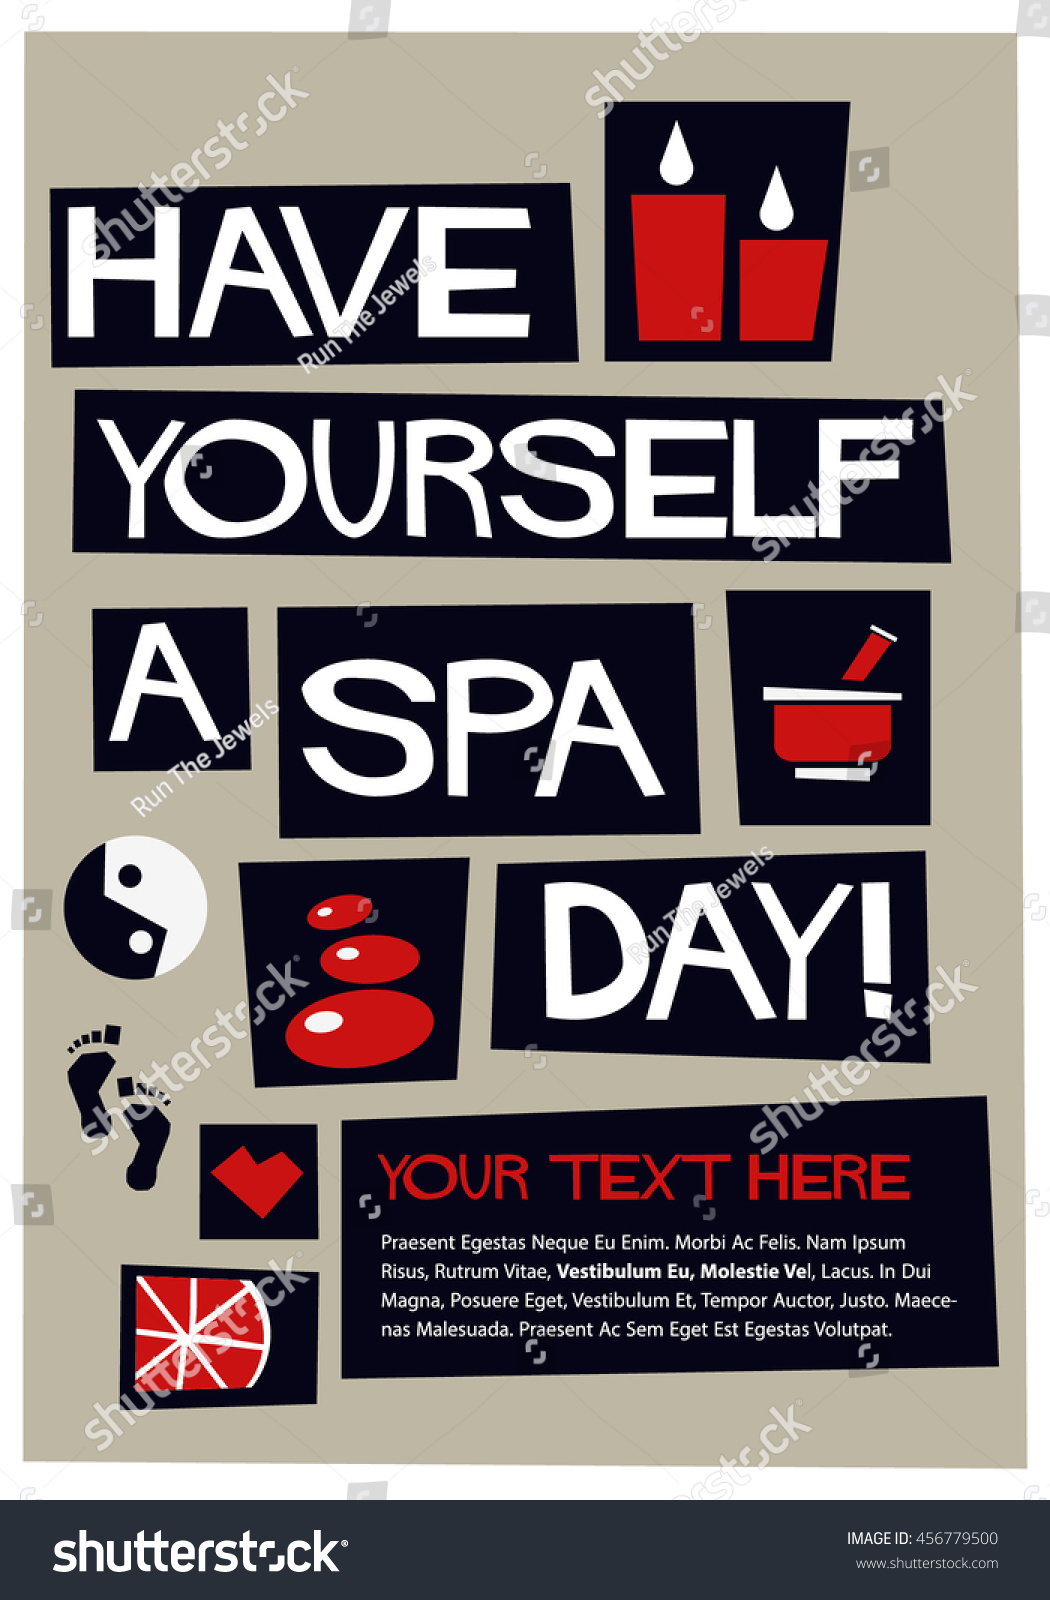 Have yourself spa day flat style stock vector royalty free have yourself a spa day flat style vector illustration quote poster design text box solutioingenieria Gallery